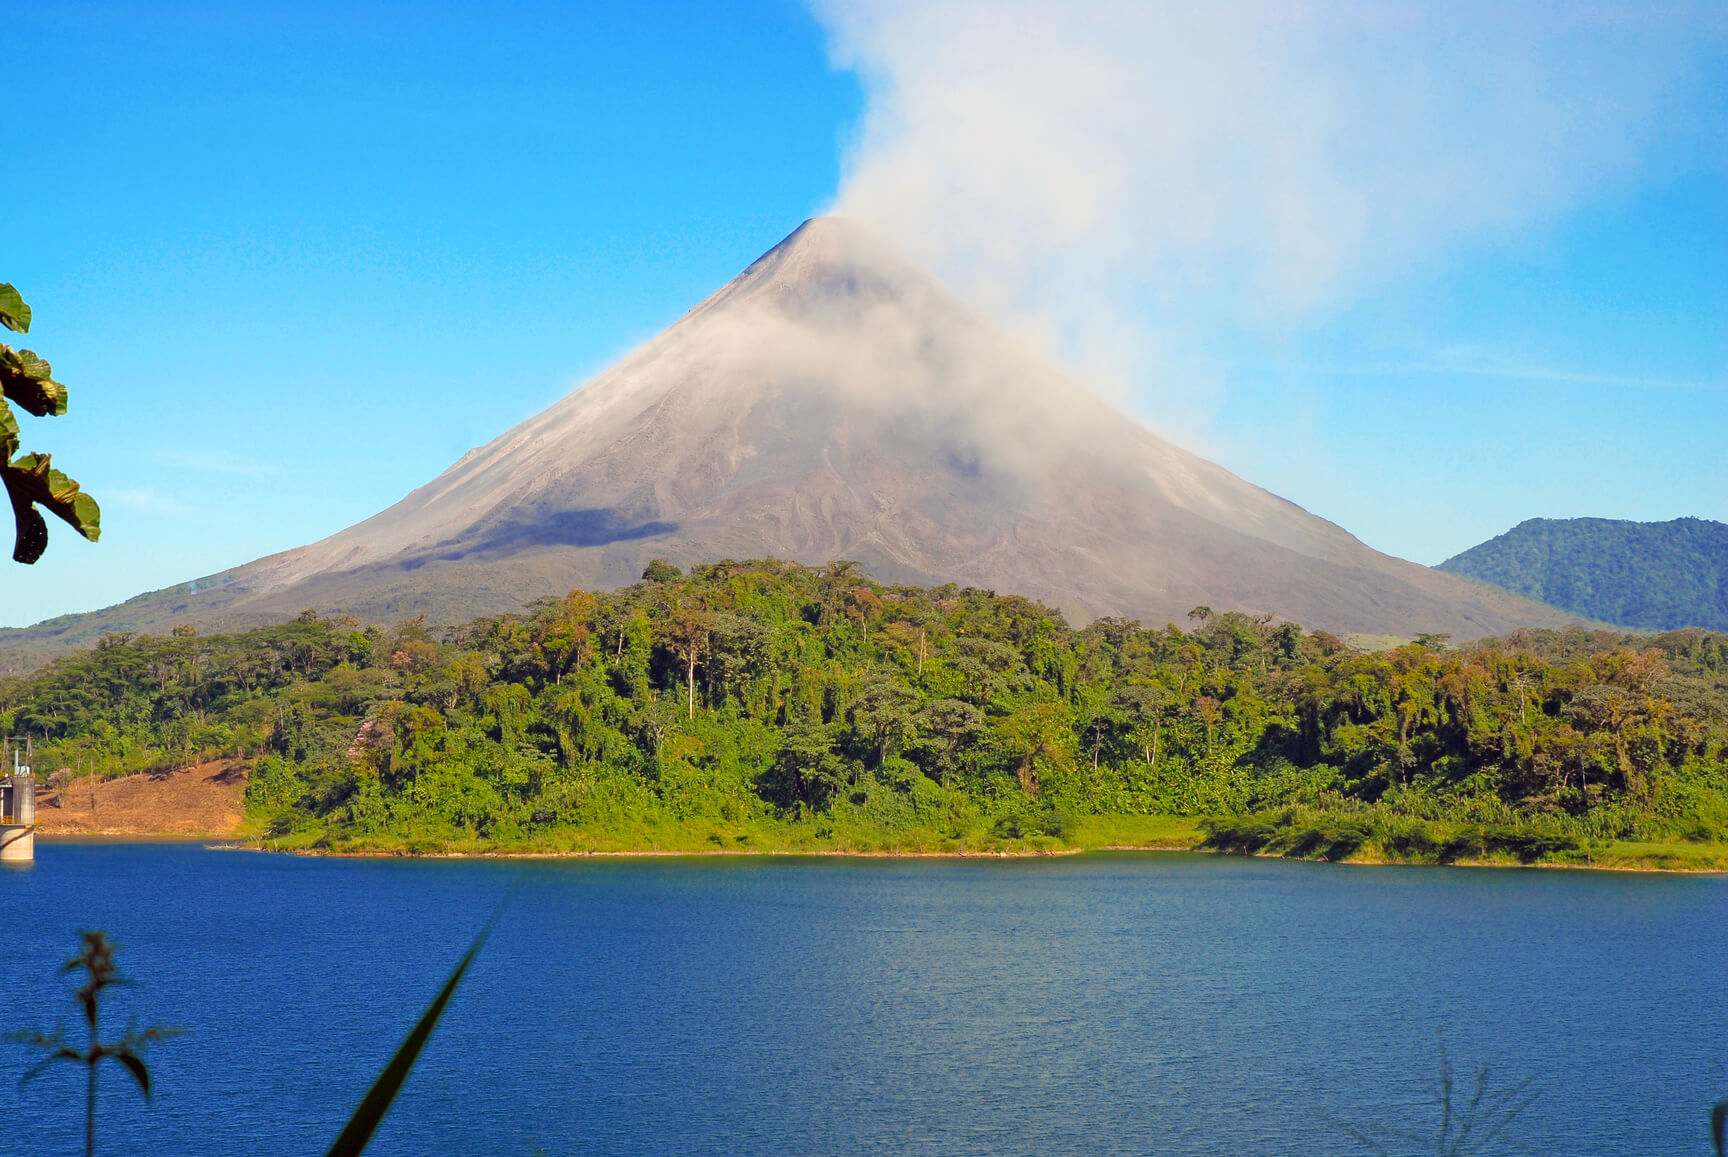 Chicago to San Jose, Costa Rica for only $244 roundtrip